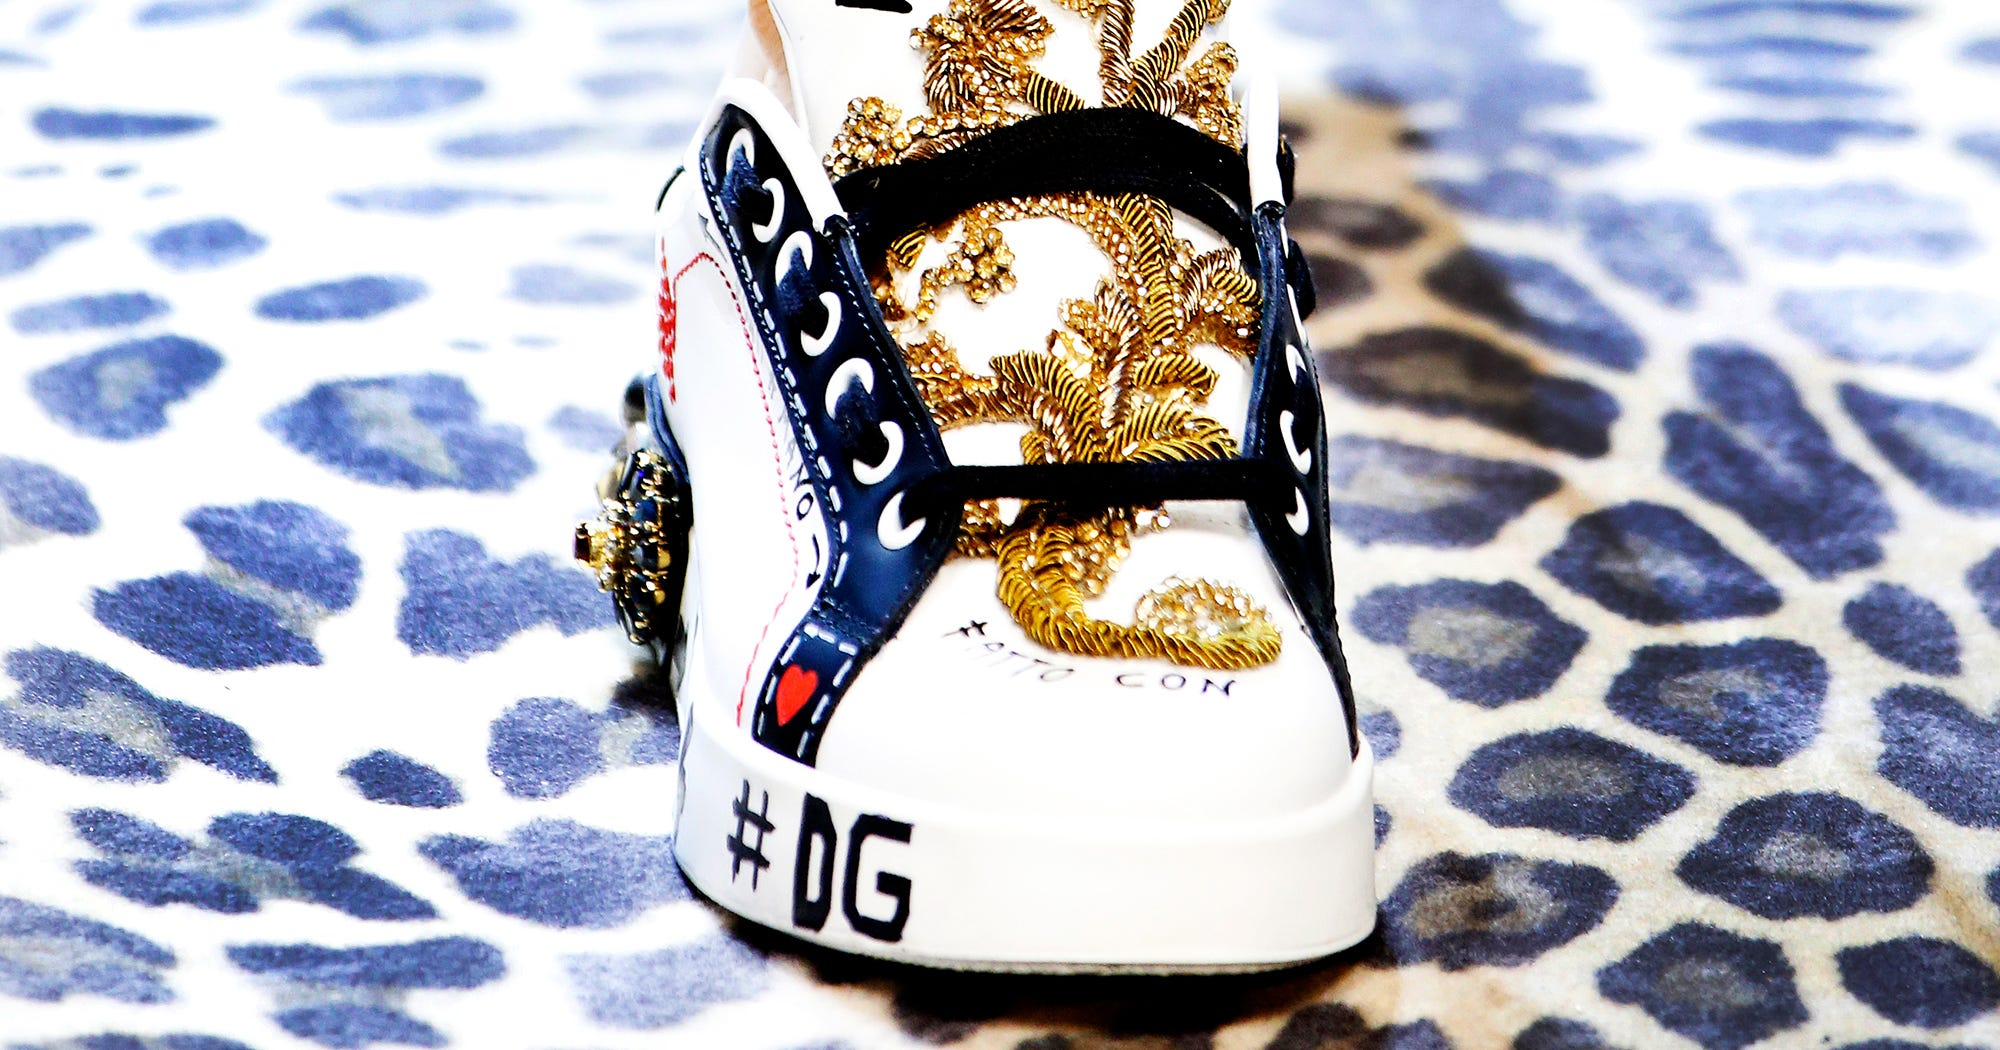 9b316dfff97 Dolce Gabbana Thin Gorgeous Sneaker Fall 2017 Backlash